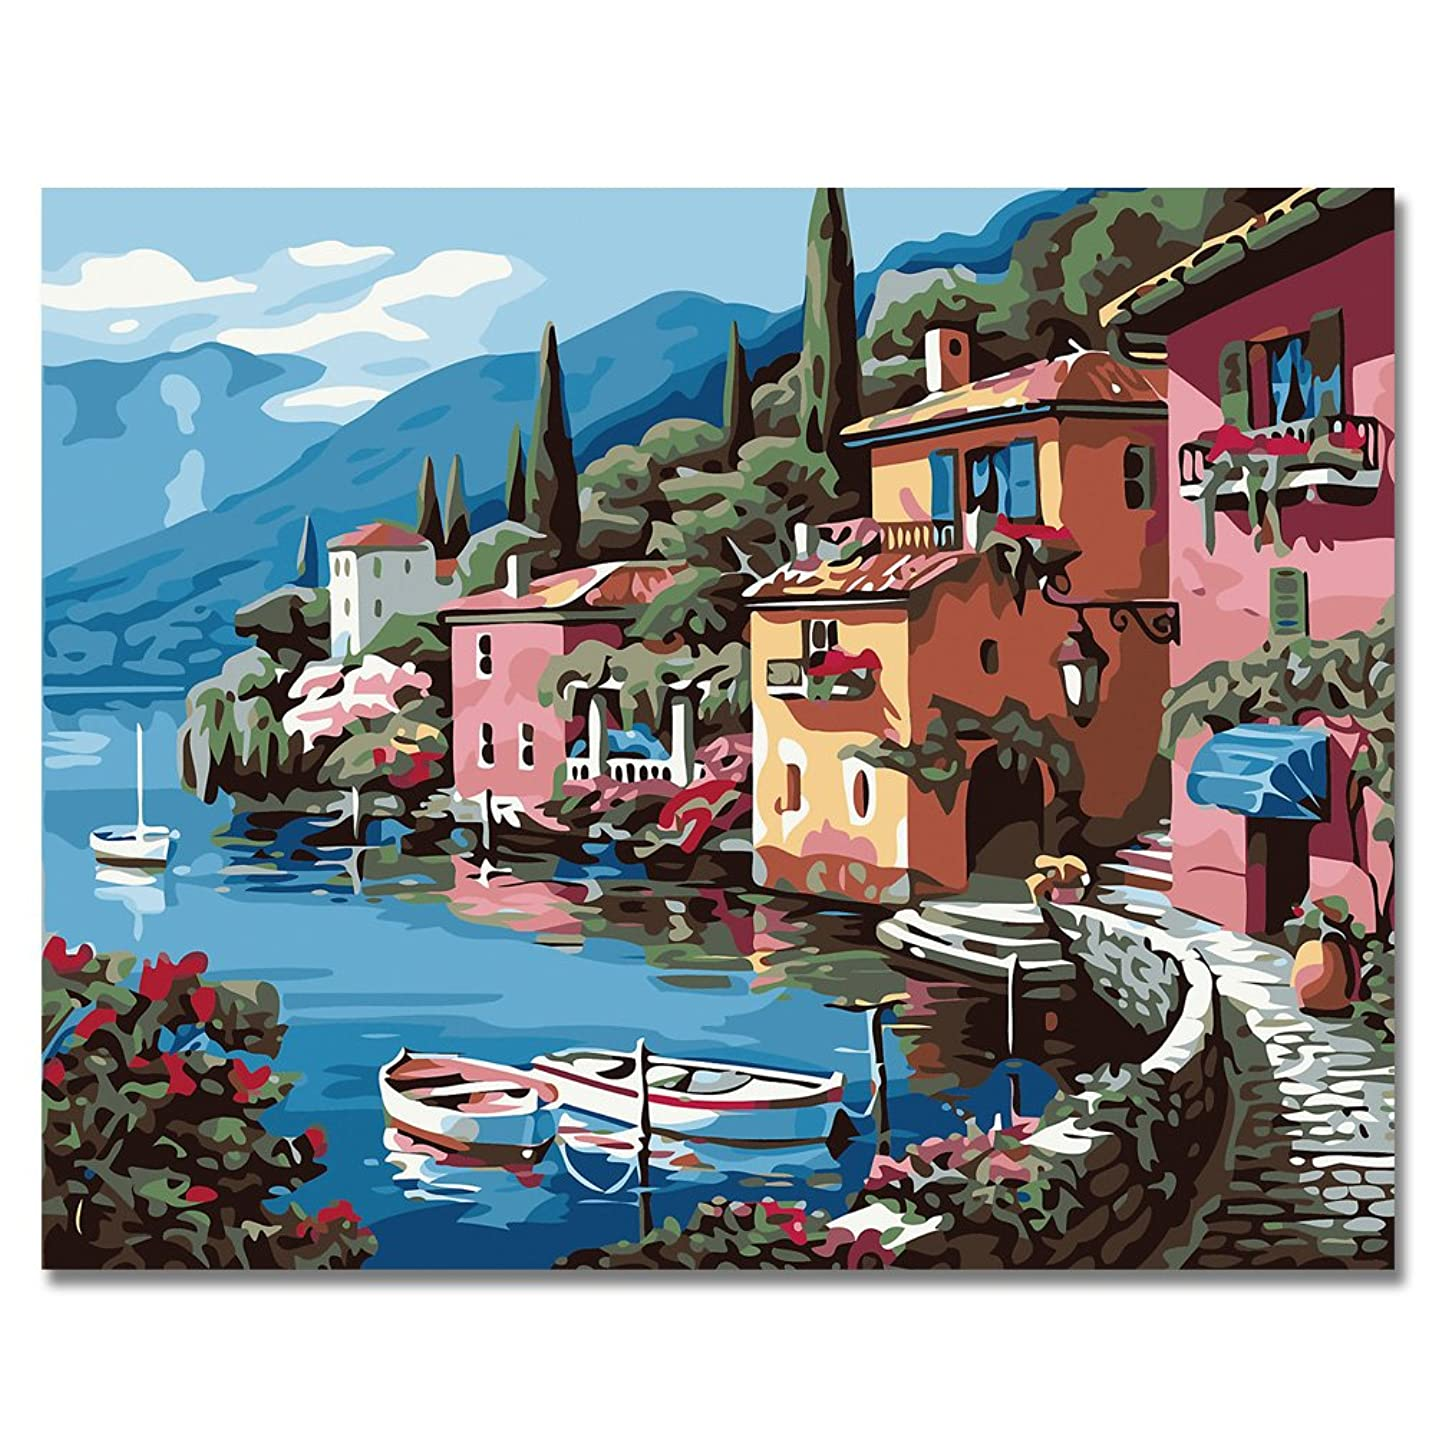 LIUDAO Paint By Number DIY Oil Painting on Canvas- Pink House 16x20 Inch Without Frame